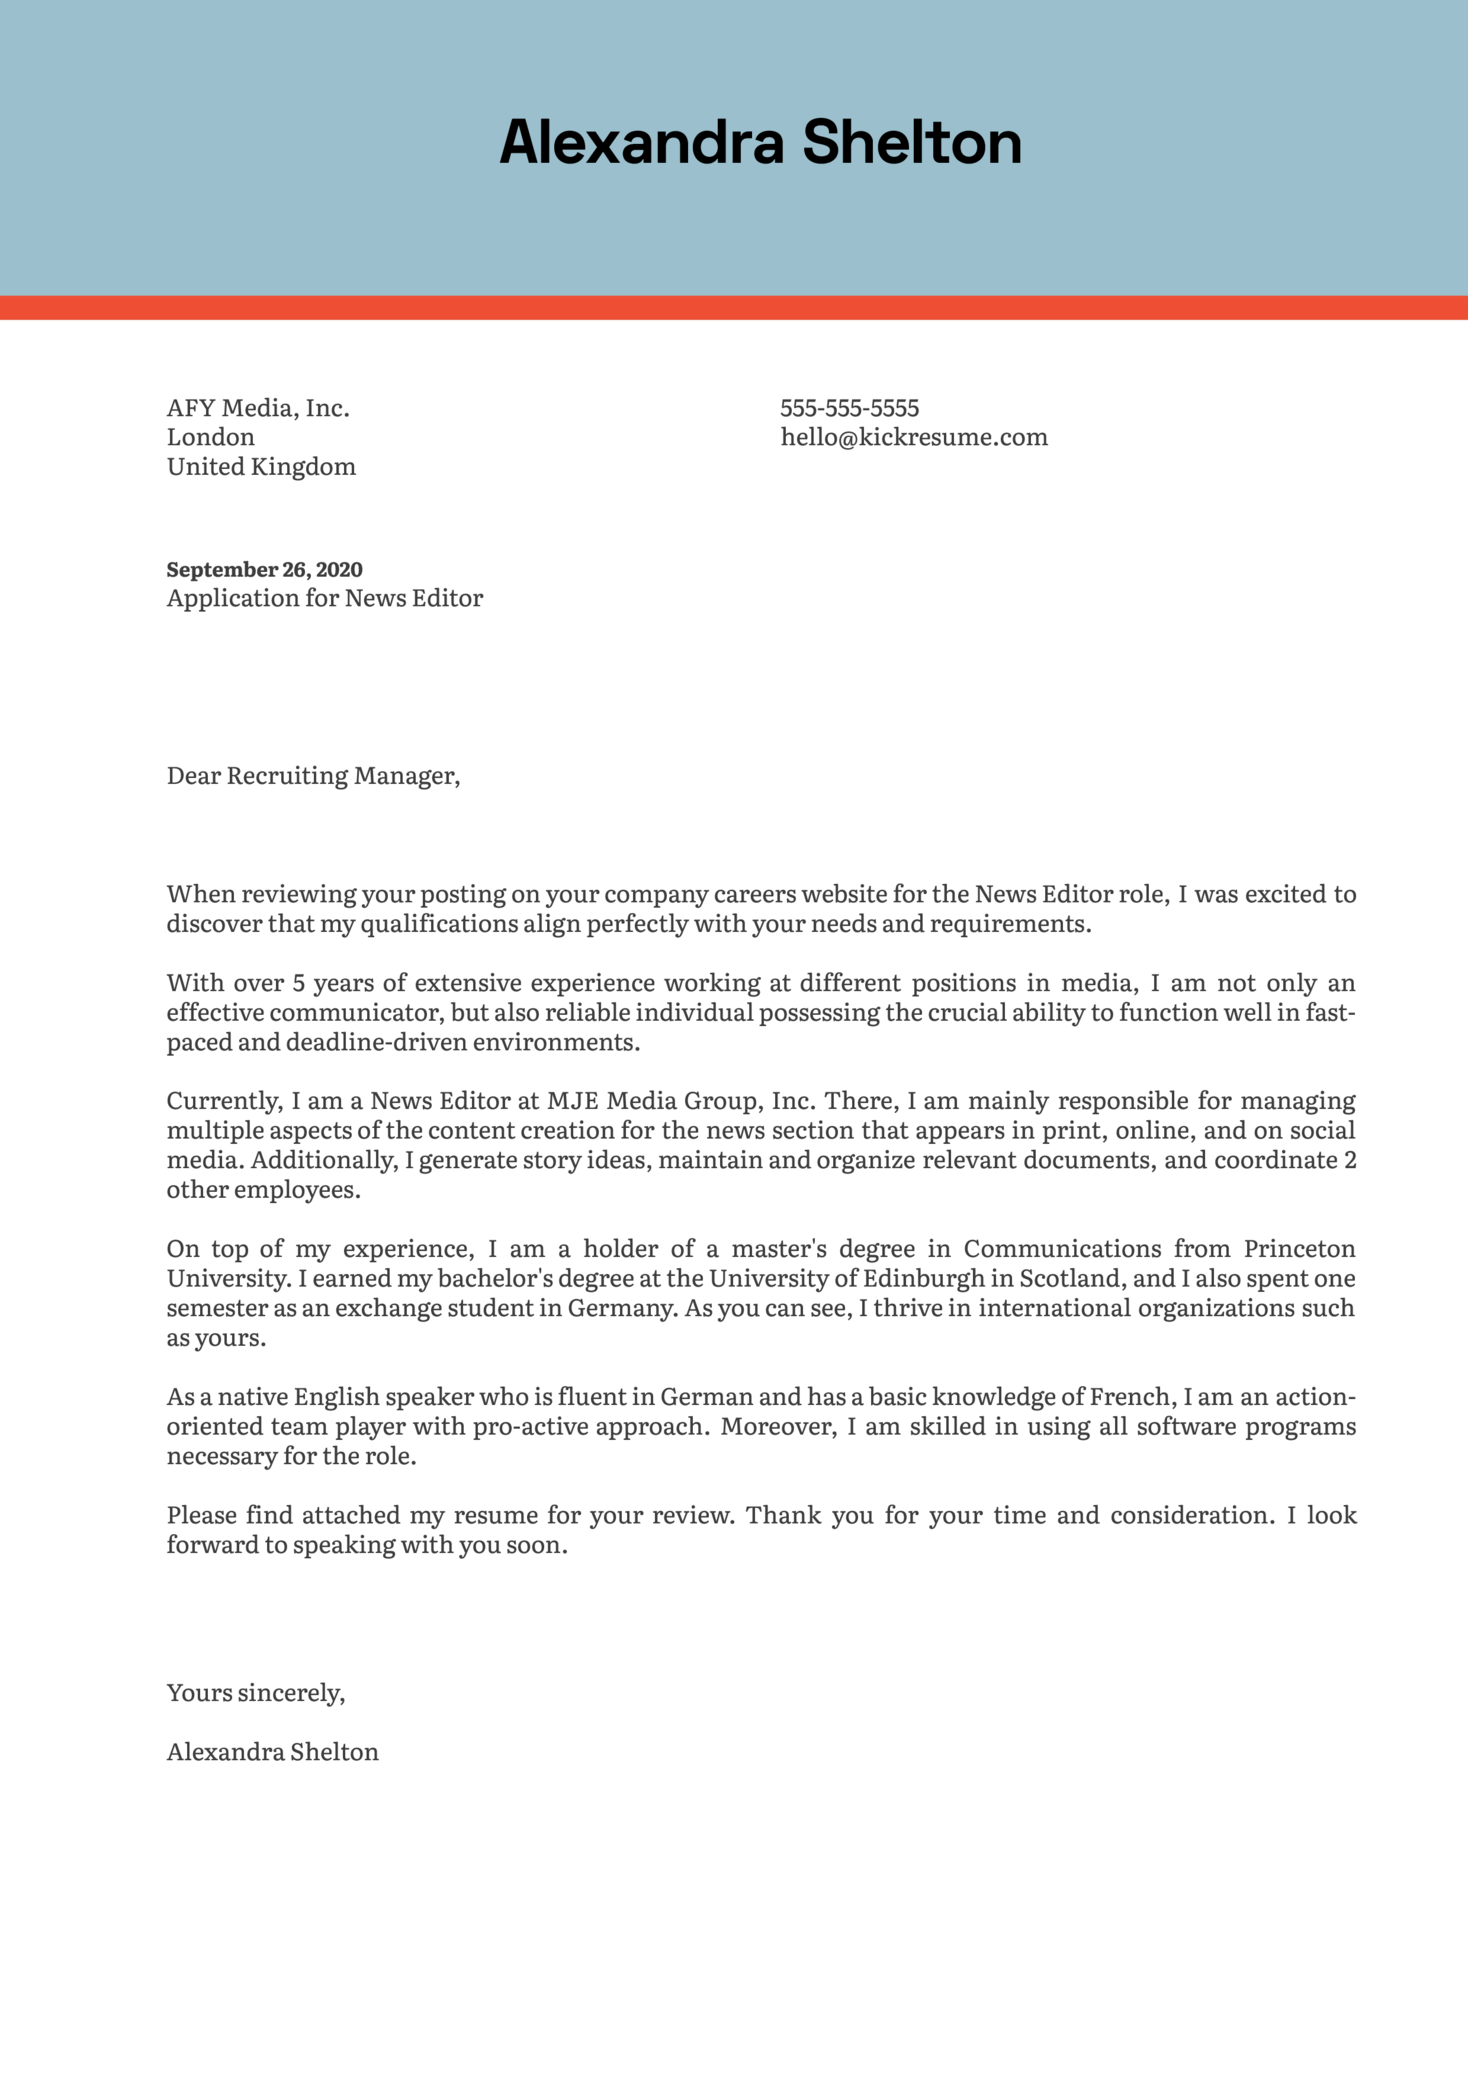 News Editor Cover Letter Example